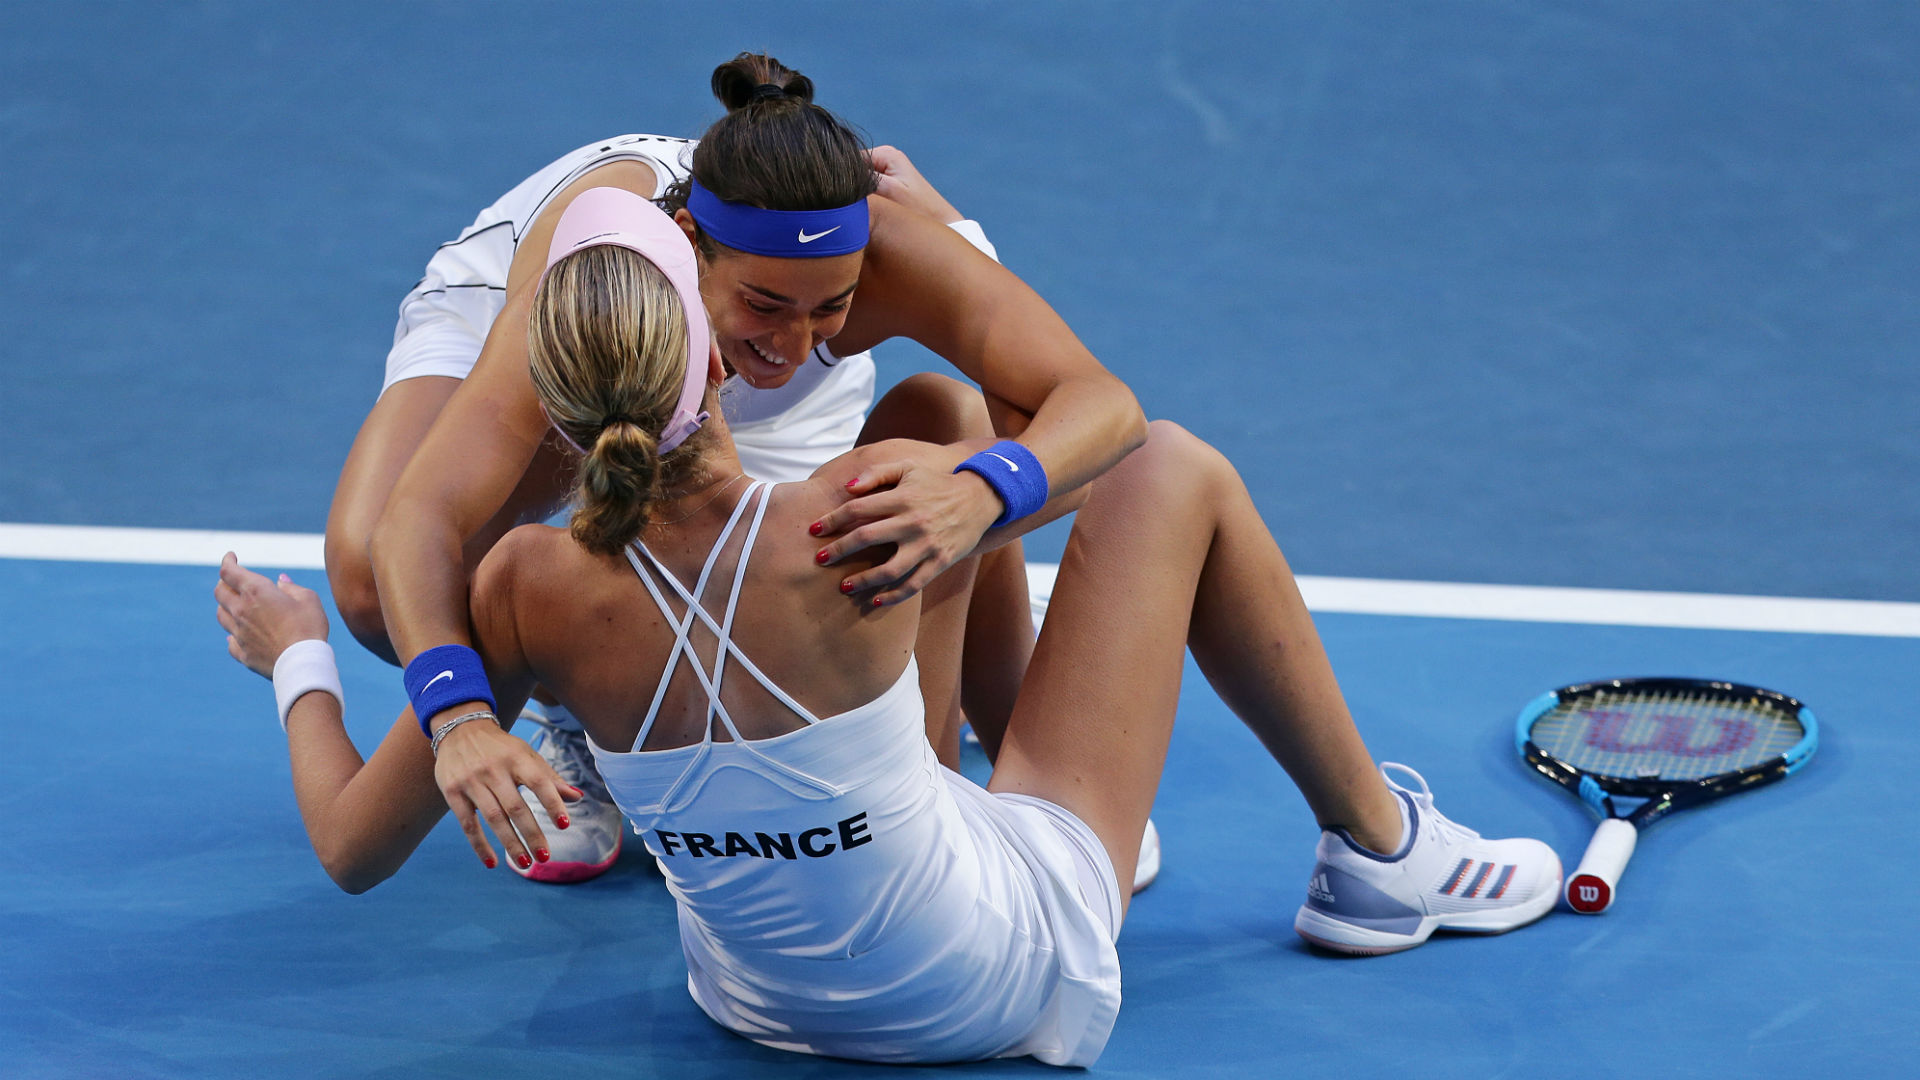 Mladenovic and Garcia make amends with Fed Cup final triumph over Barty's Australia